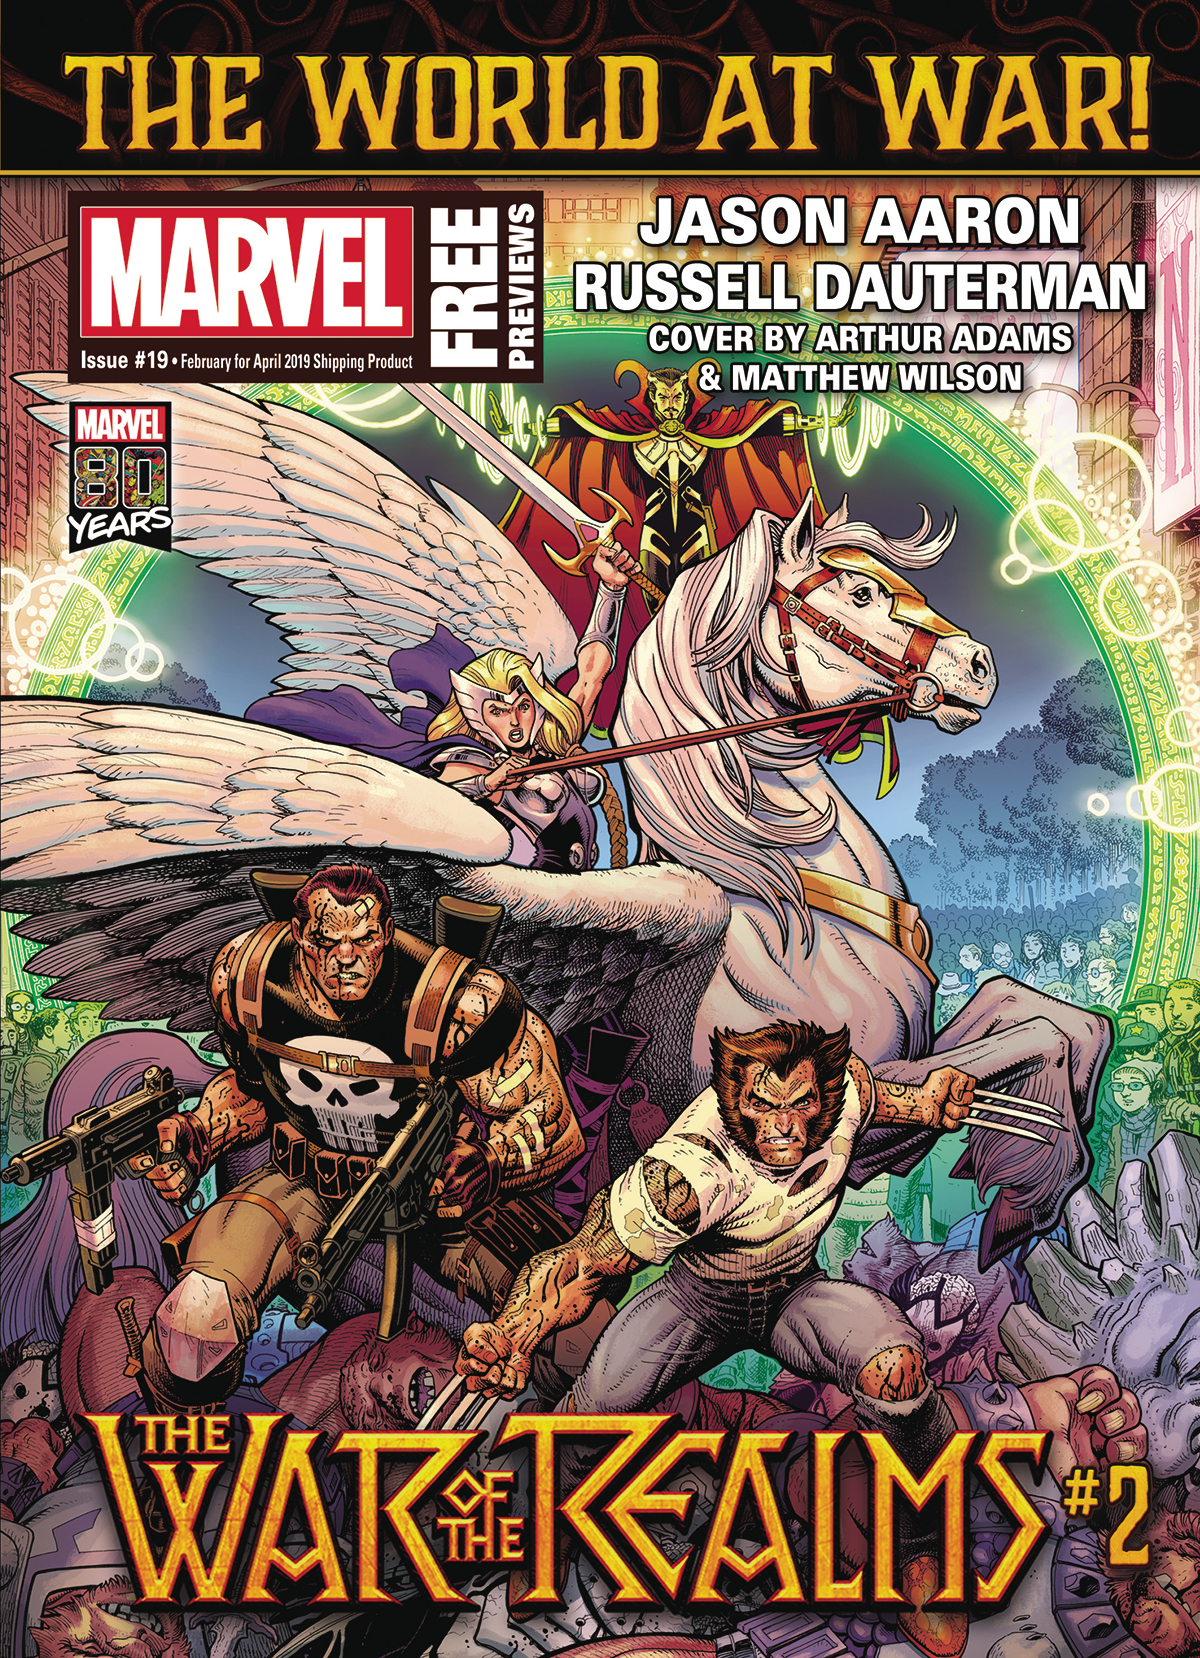 MARVEL PREVIEWS VOL 04 #19 FEBRUARY 2019 EXTRAS